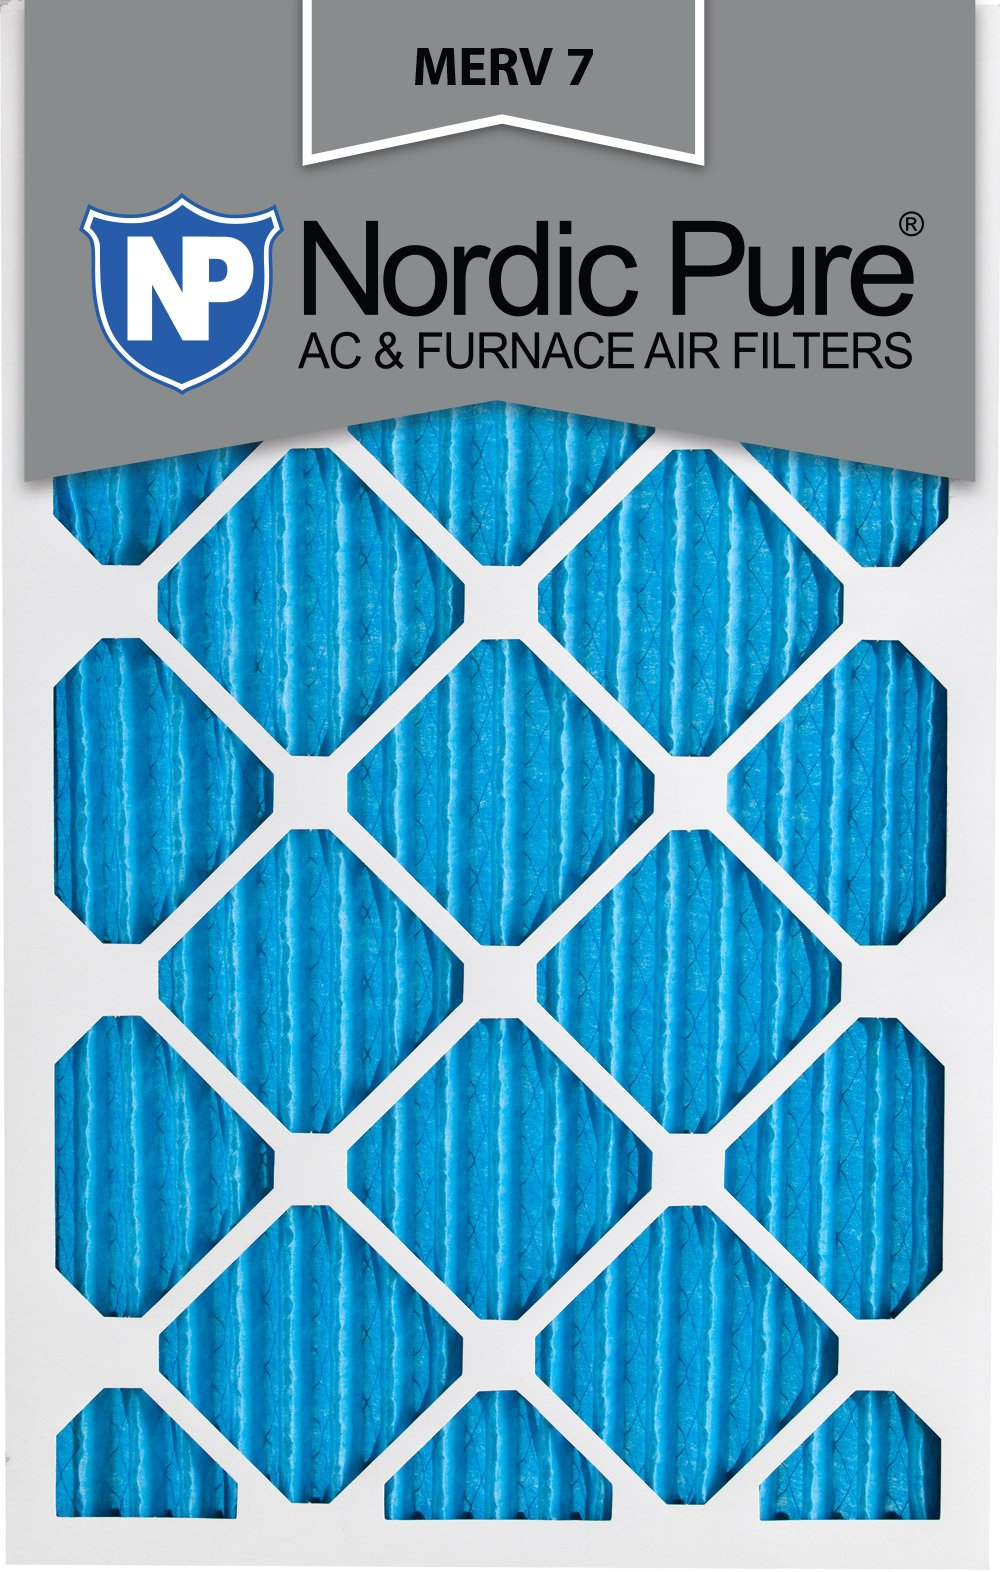 Nordic Pure 16x25x1M7-6 MERV 7 Pleated AC Furnace Air Filter, 16x25x1, Box of 6